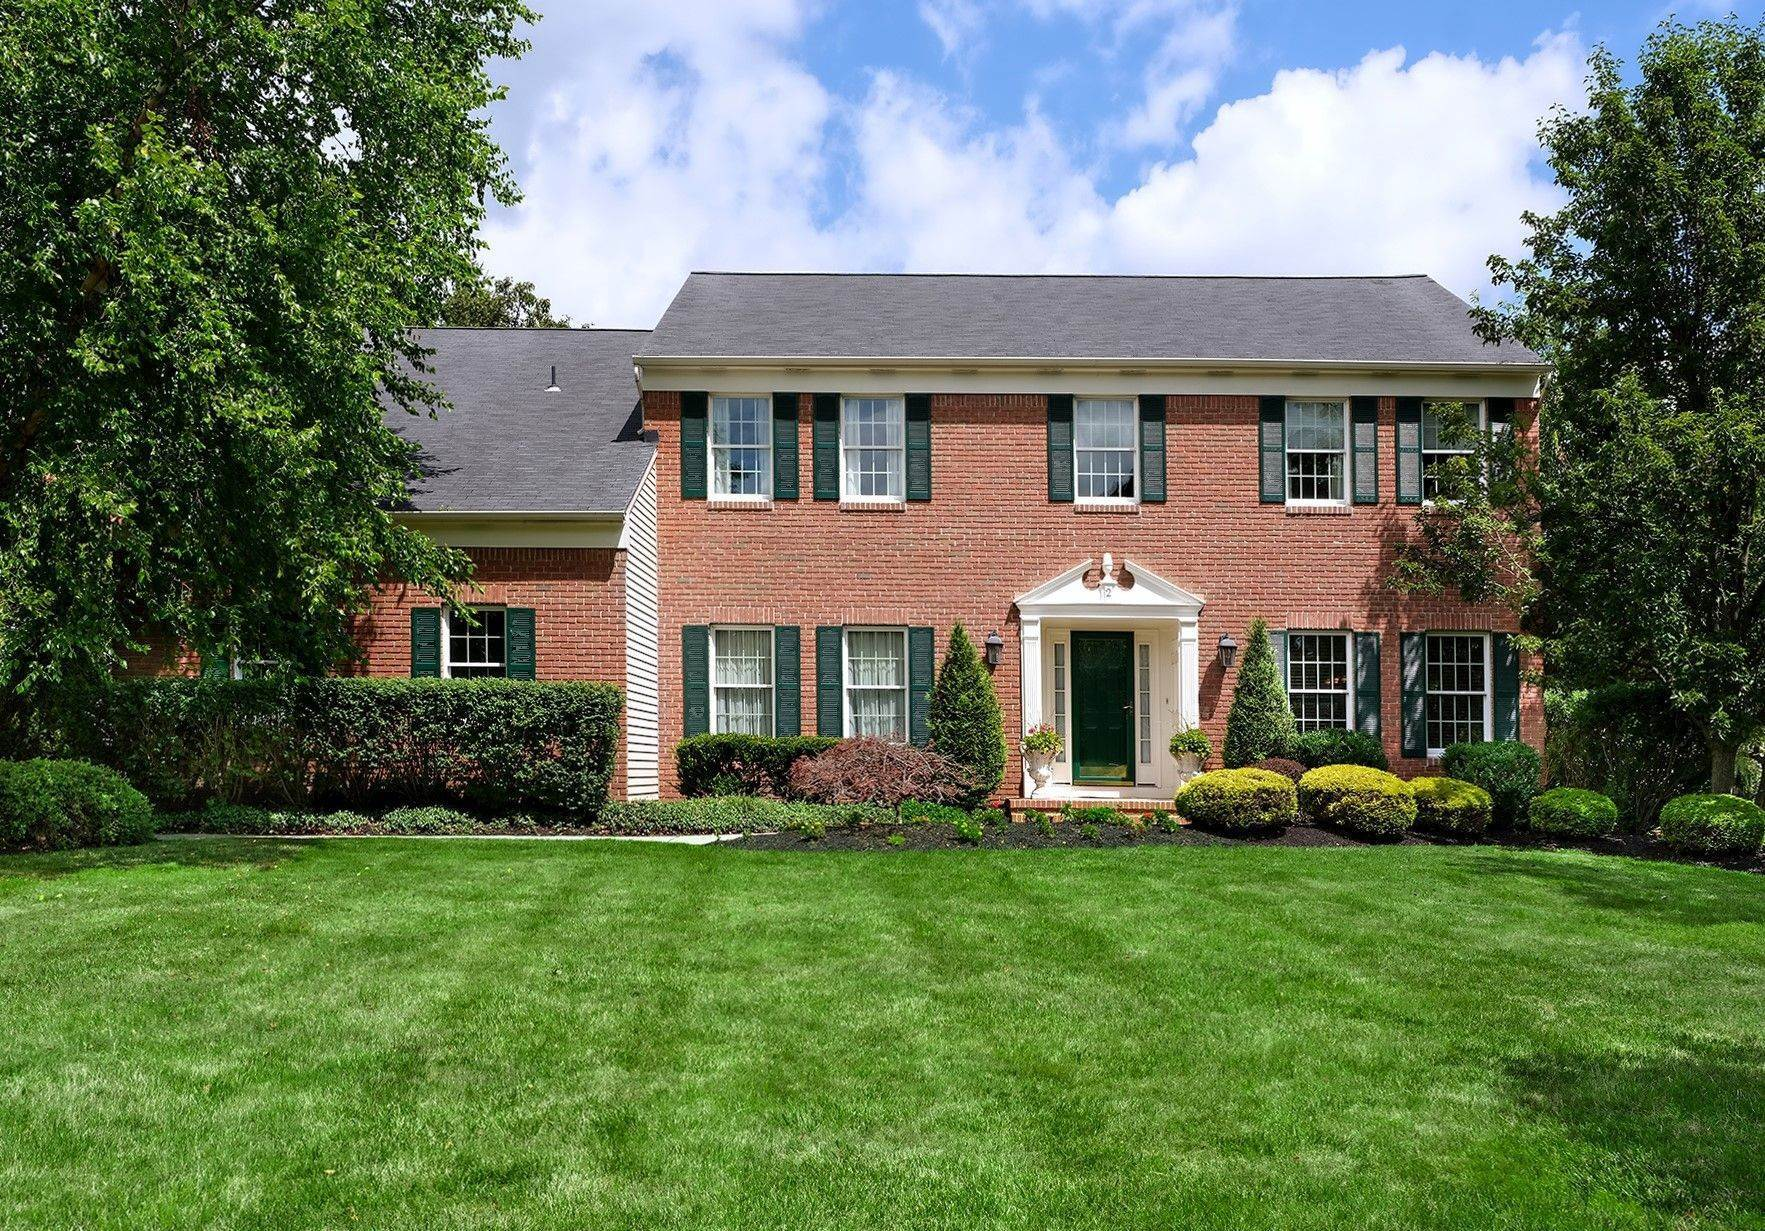 Single Family Homes for Sale at Princeton Oaks Perfection 2 Bush Court, West Windsor, New Jersey 08550 United States